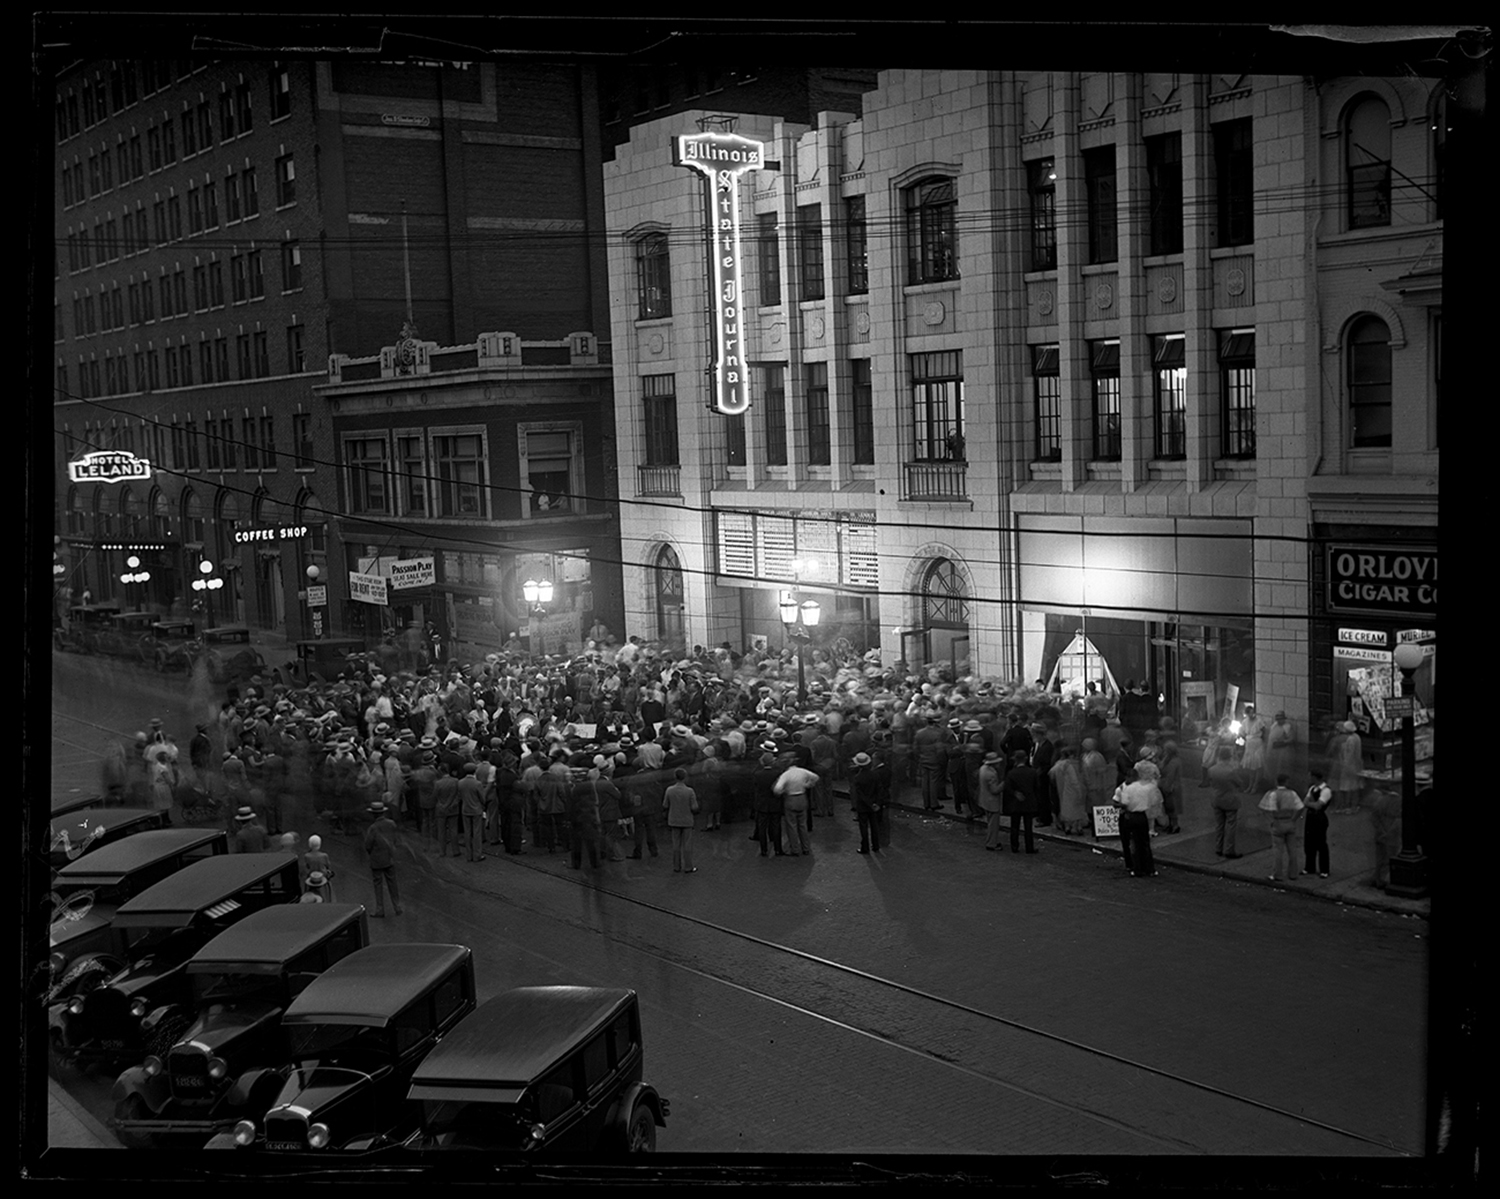 A band entertains people waiting to tour the new Illinois State Journal building, June 18, 1930. The tours began at 7 p.m. and lasted into the evening so visitors could see as much of the production as possible. Sixth Street in front of the building was closed to traffic to accommodate the crowds. Col. Ira C. Copley, who had purchased the Journal two years earlier, greeted the visitors. File/The State Journal-Register